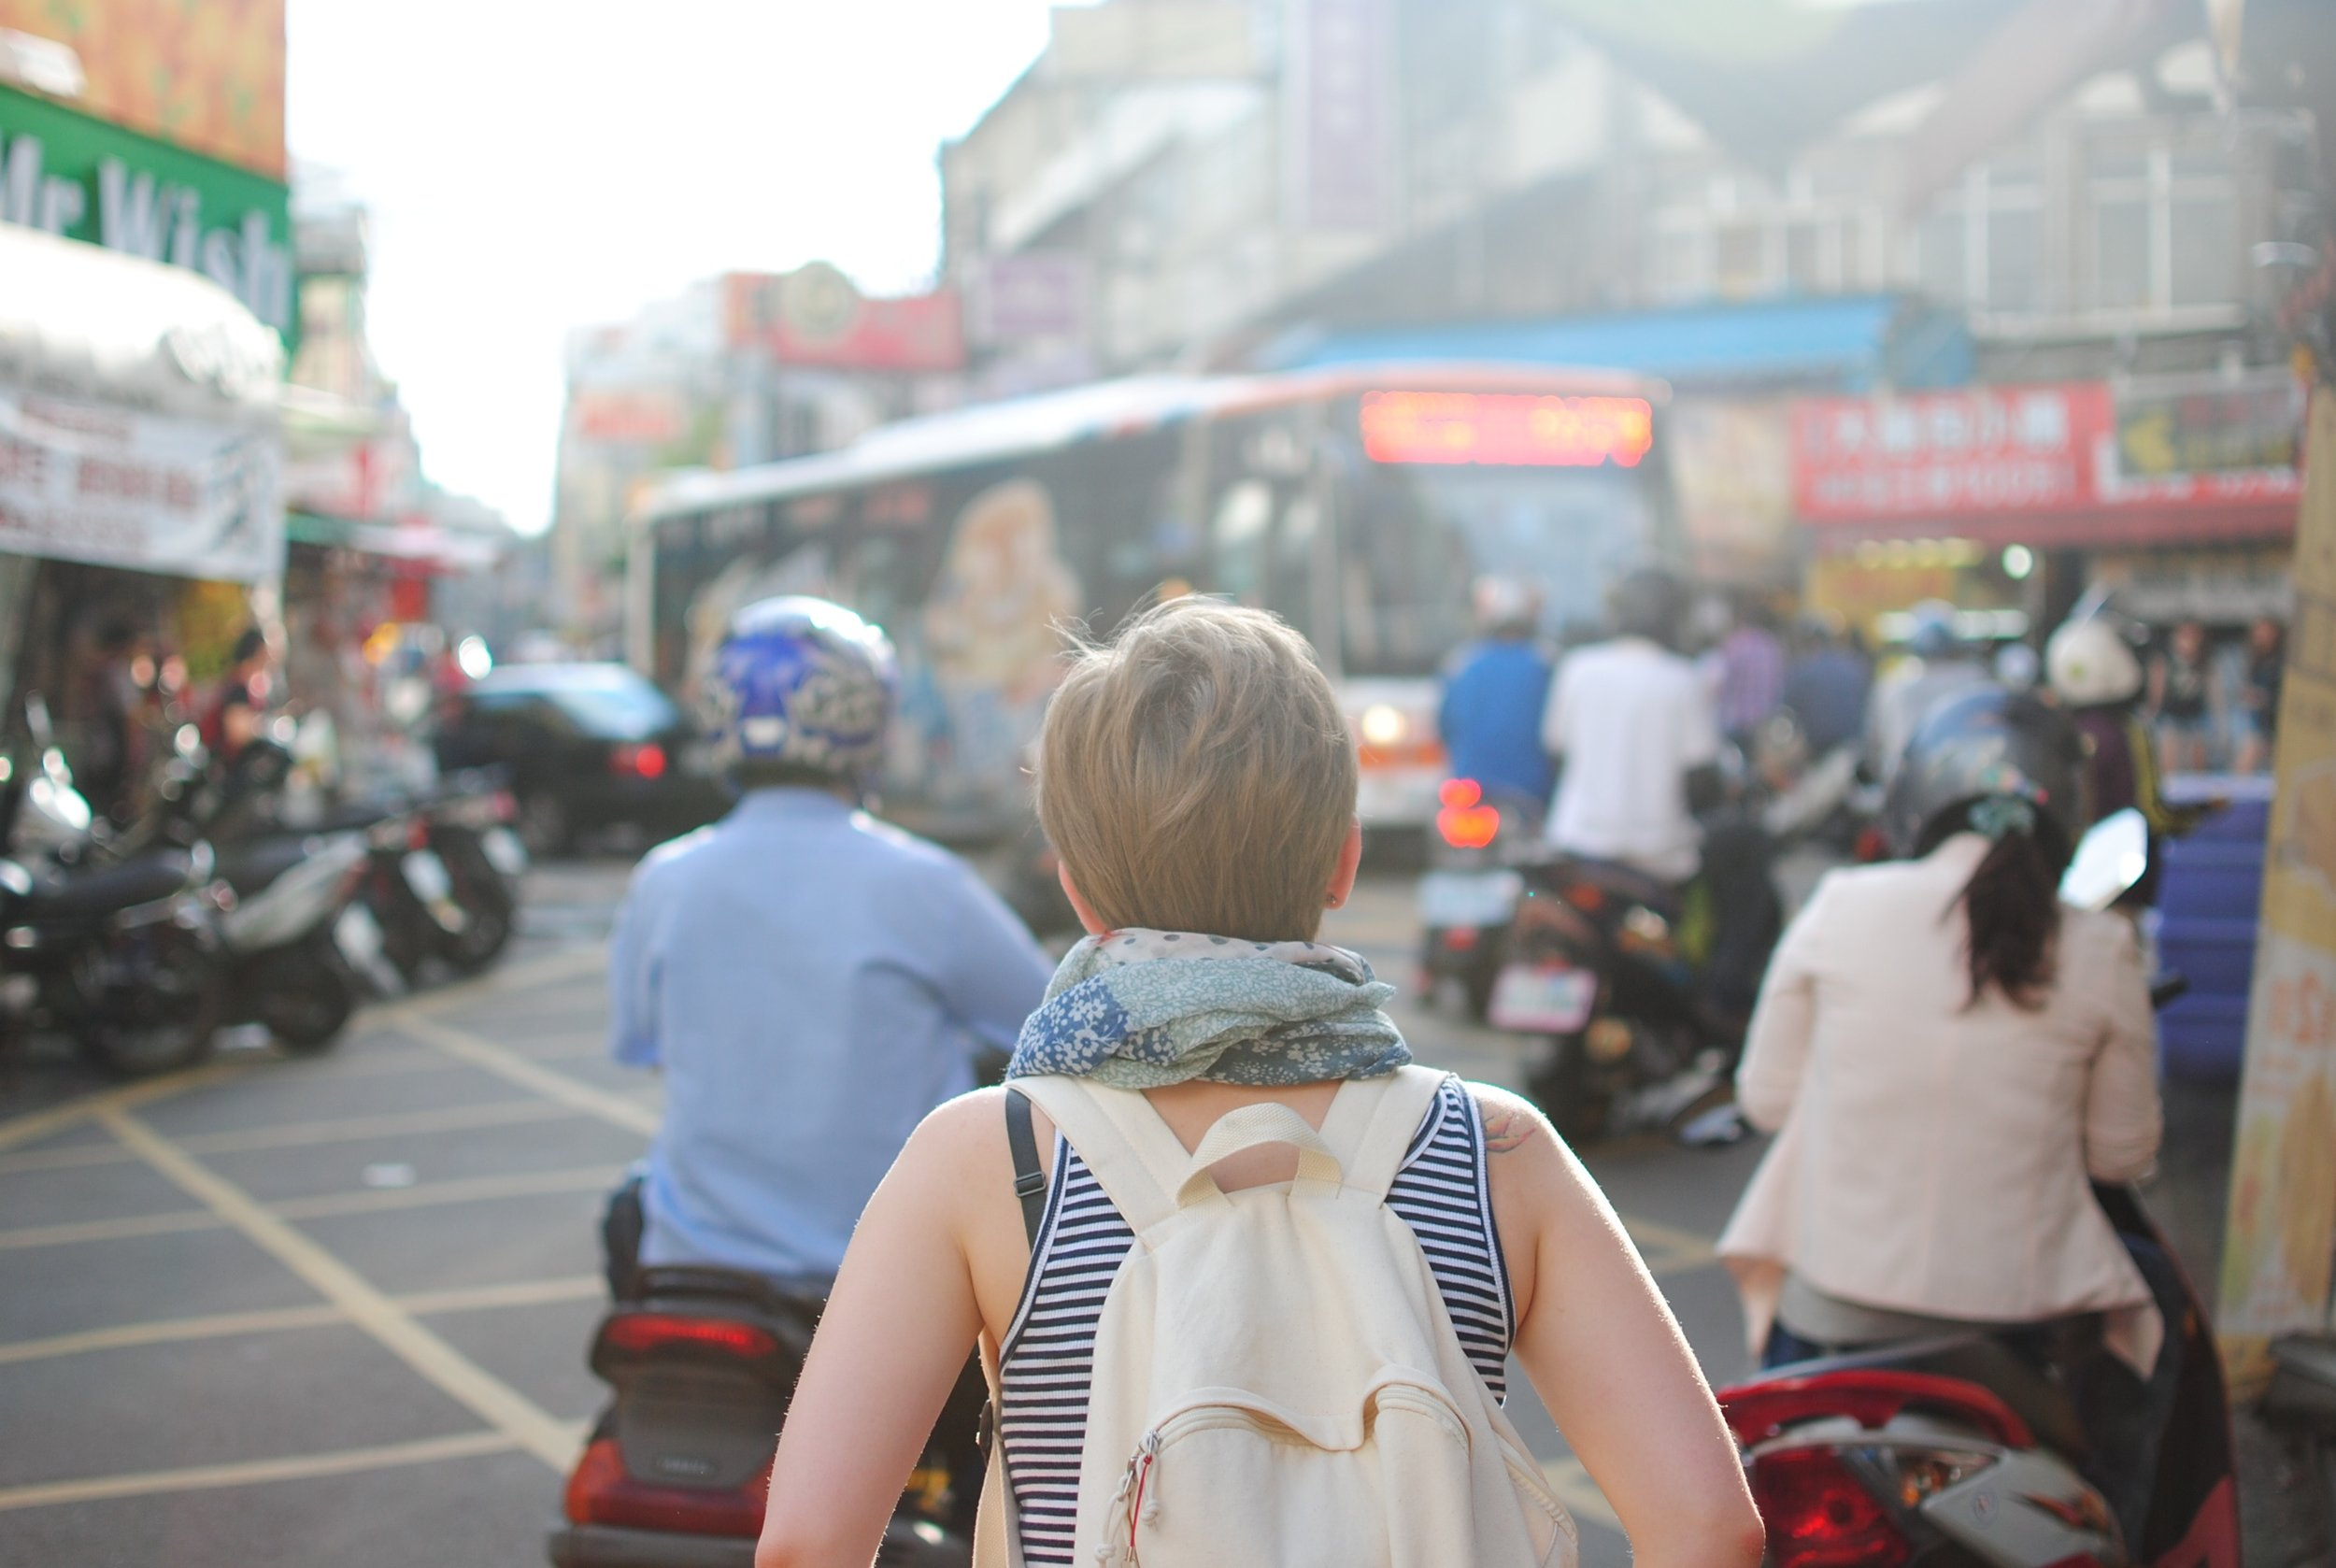 women-walking-down-the-street-with-a-backpack.jpg